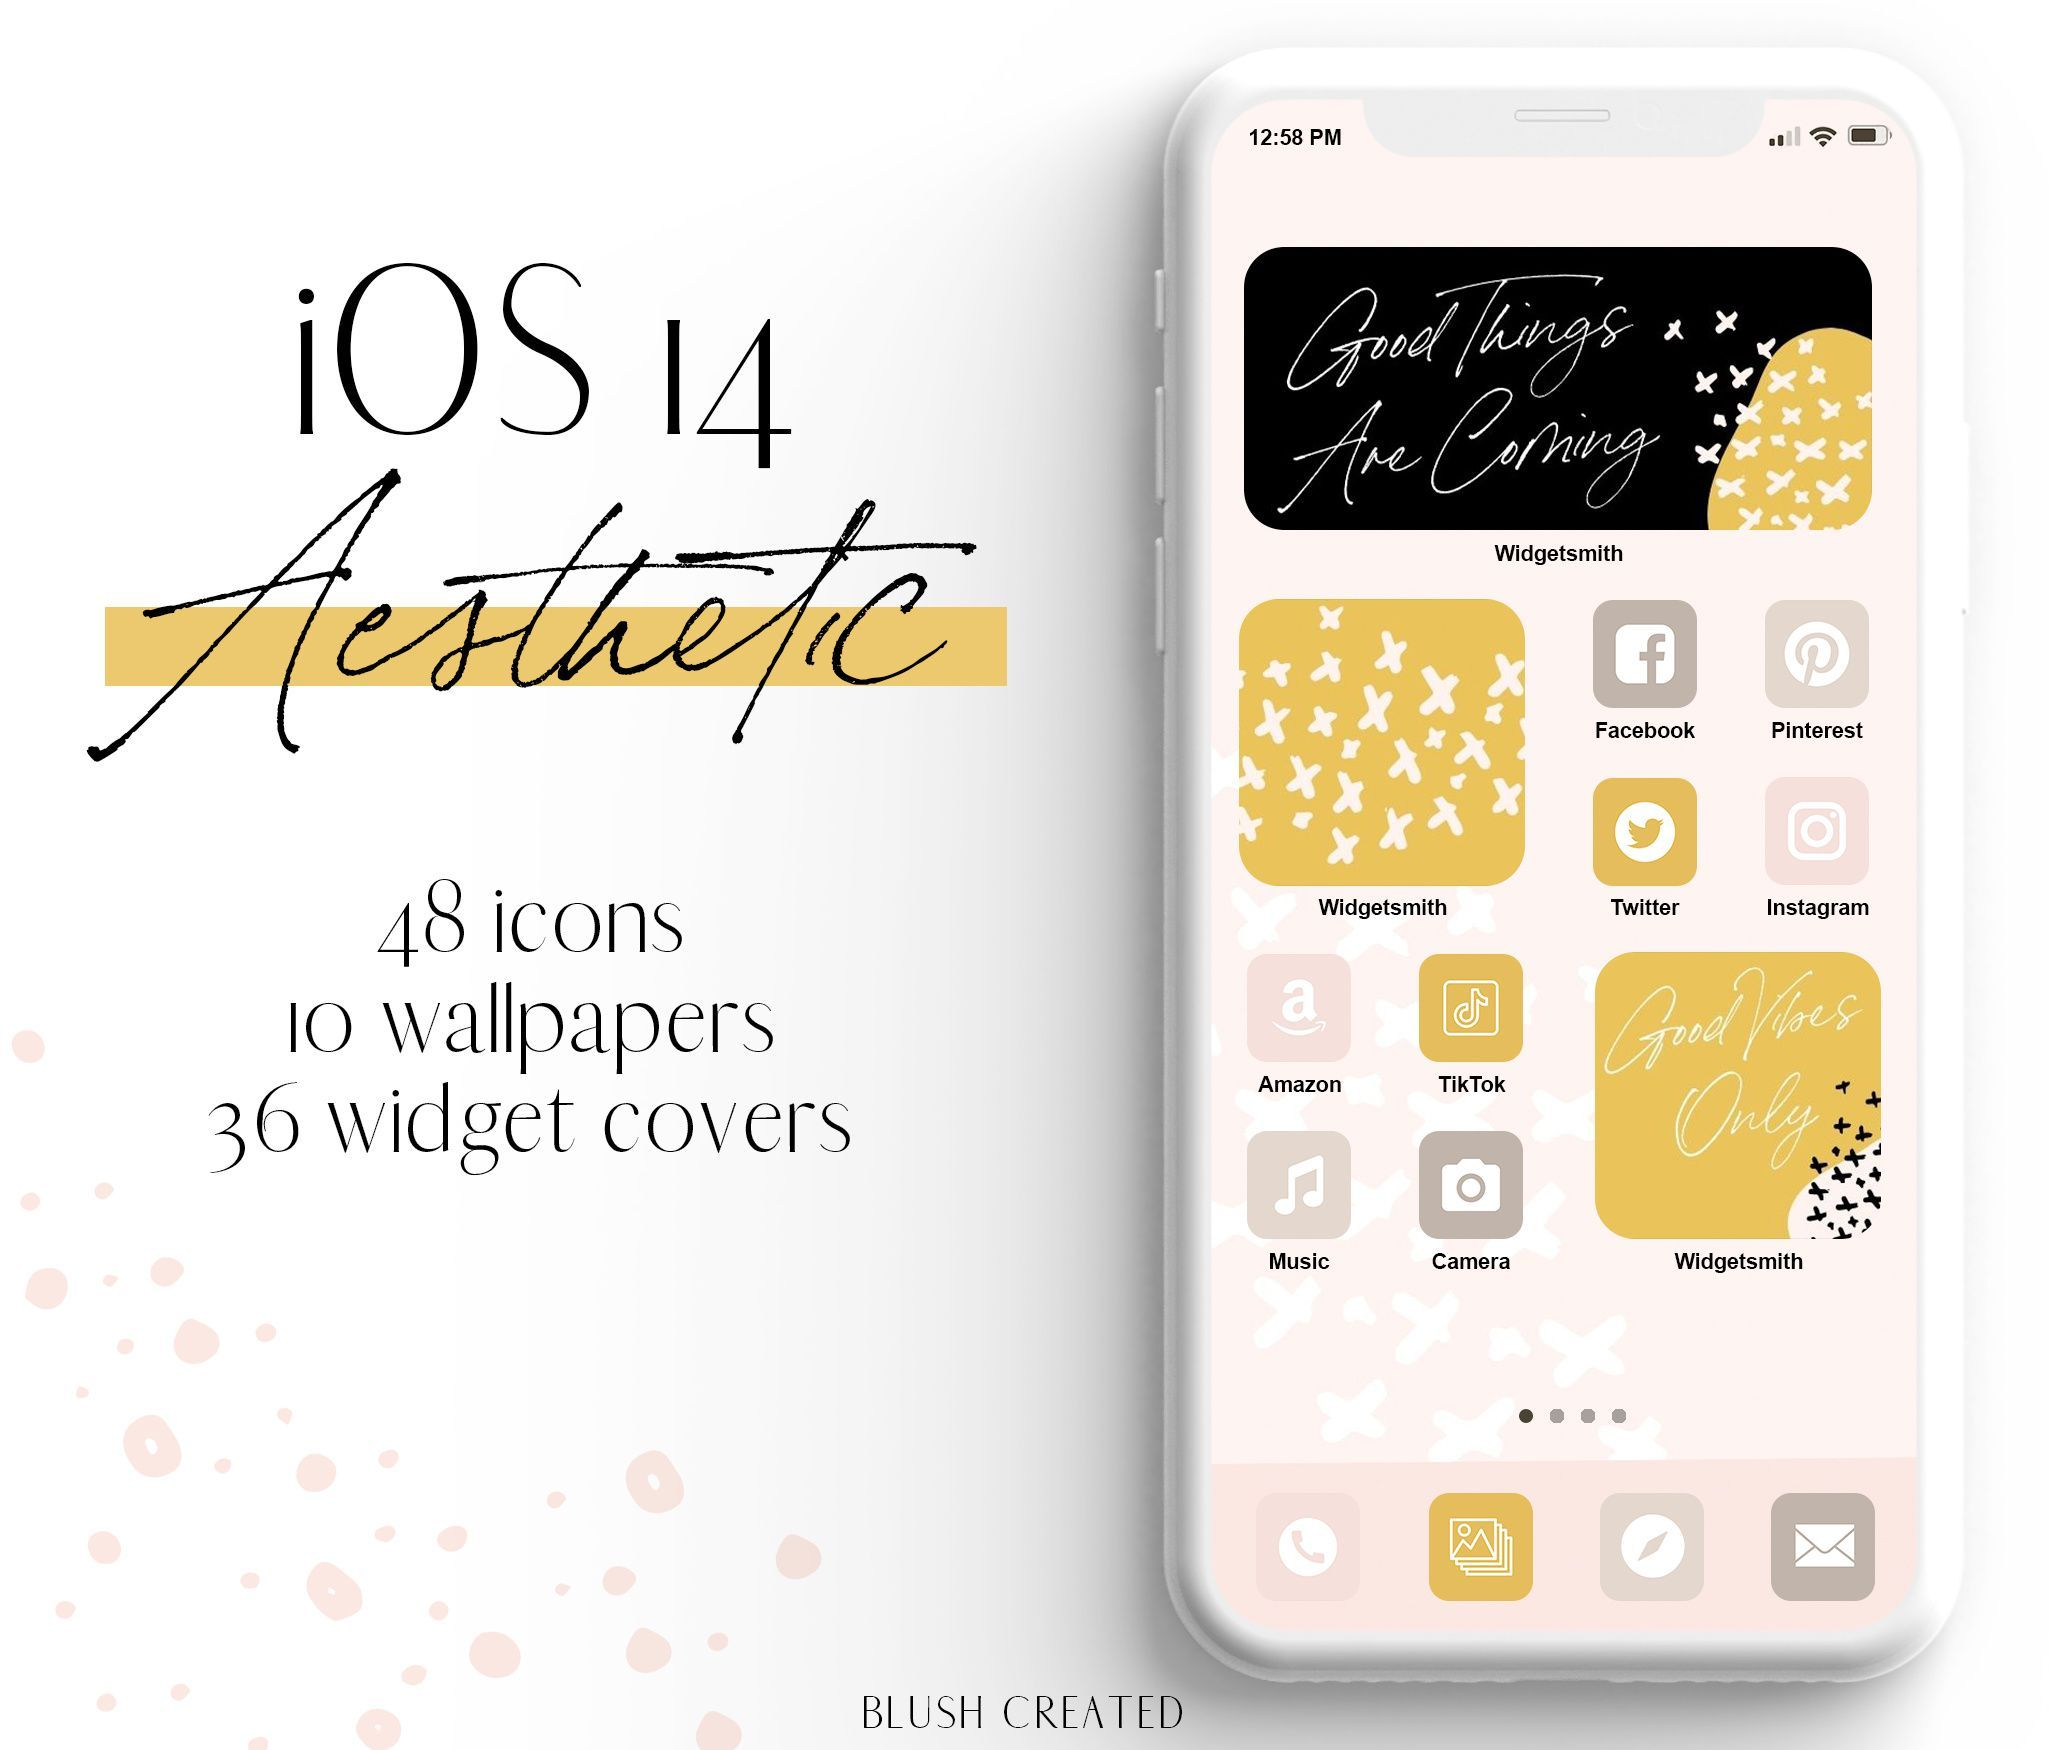 Ios 14 Aesthetic Pink Yellow Iphone App Icons Widget Images Blush Created App Icon Homescreen Iphone Apps